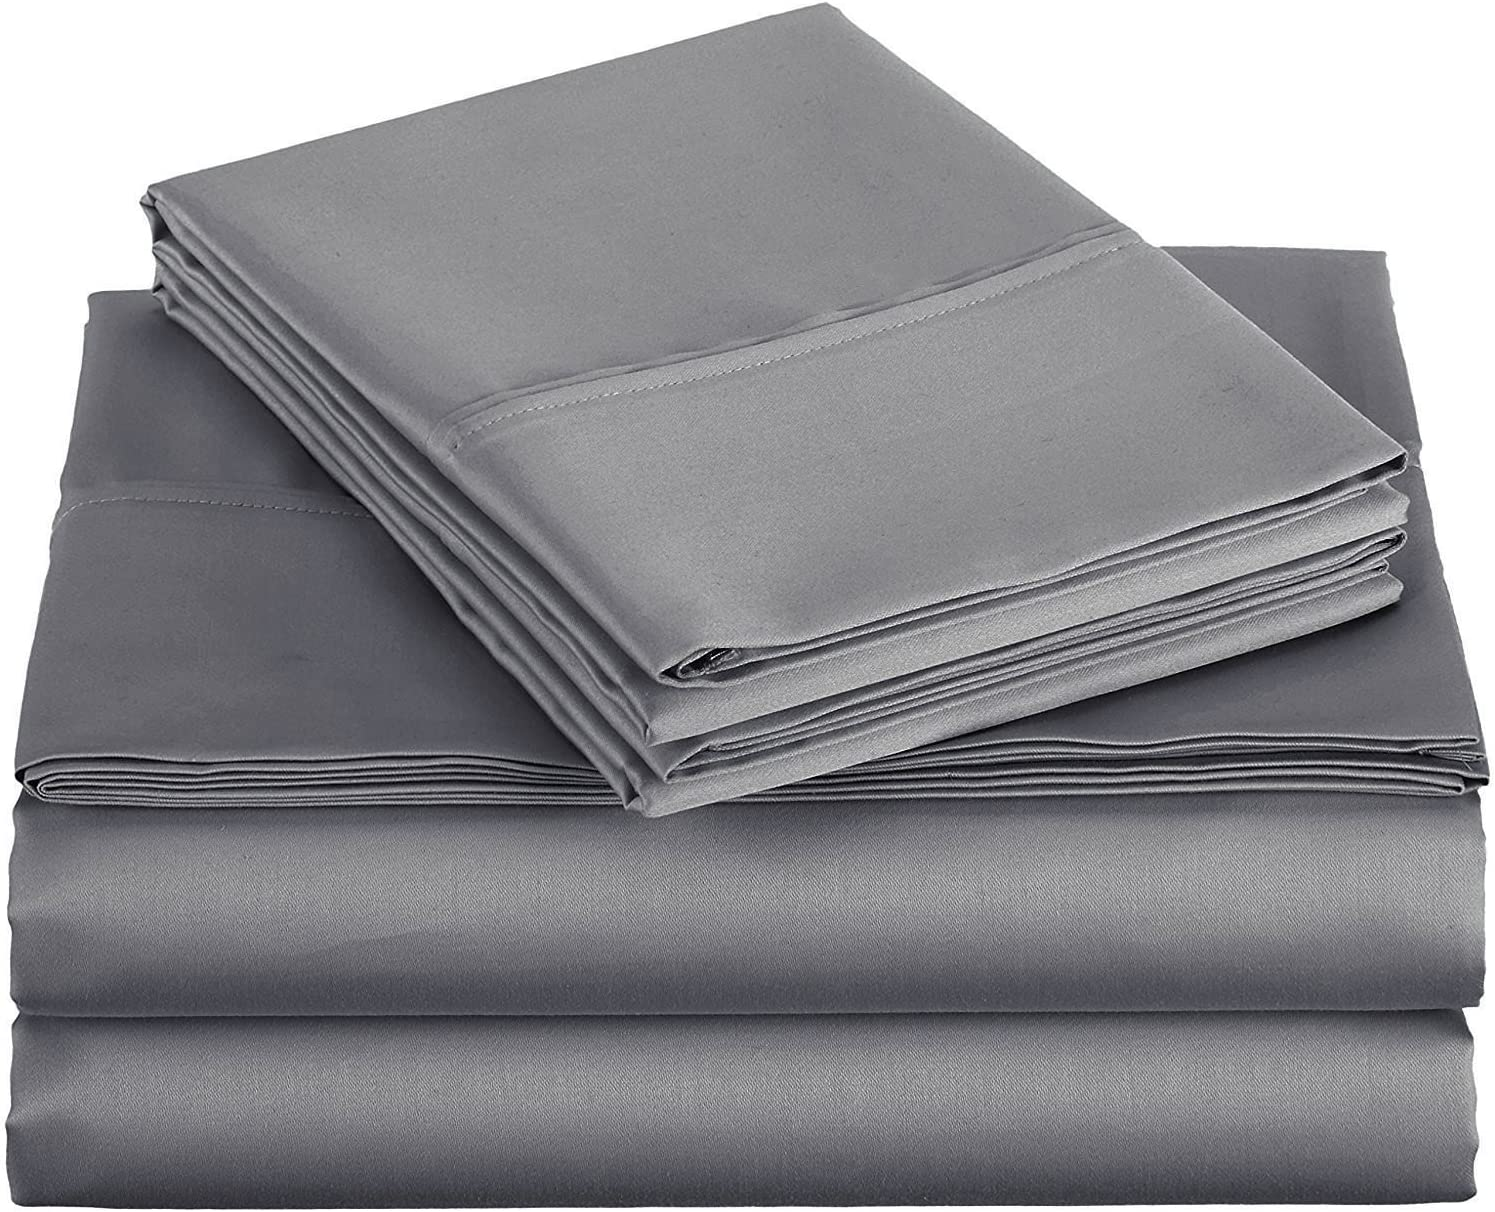 Ras Decor Linen TOP Split King 100% Cotton 600 Thread Count, Split Head Bed Sheet Set - 1 Fitted Sheet with 32